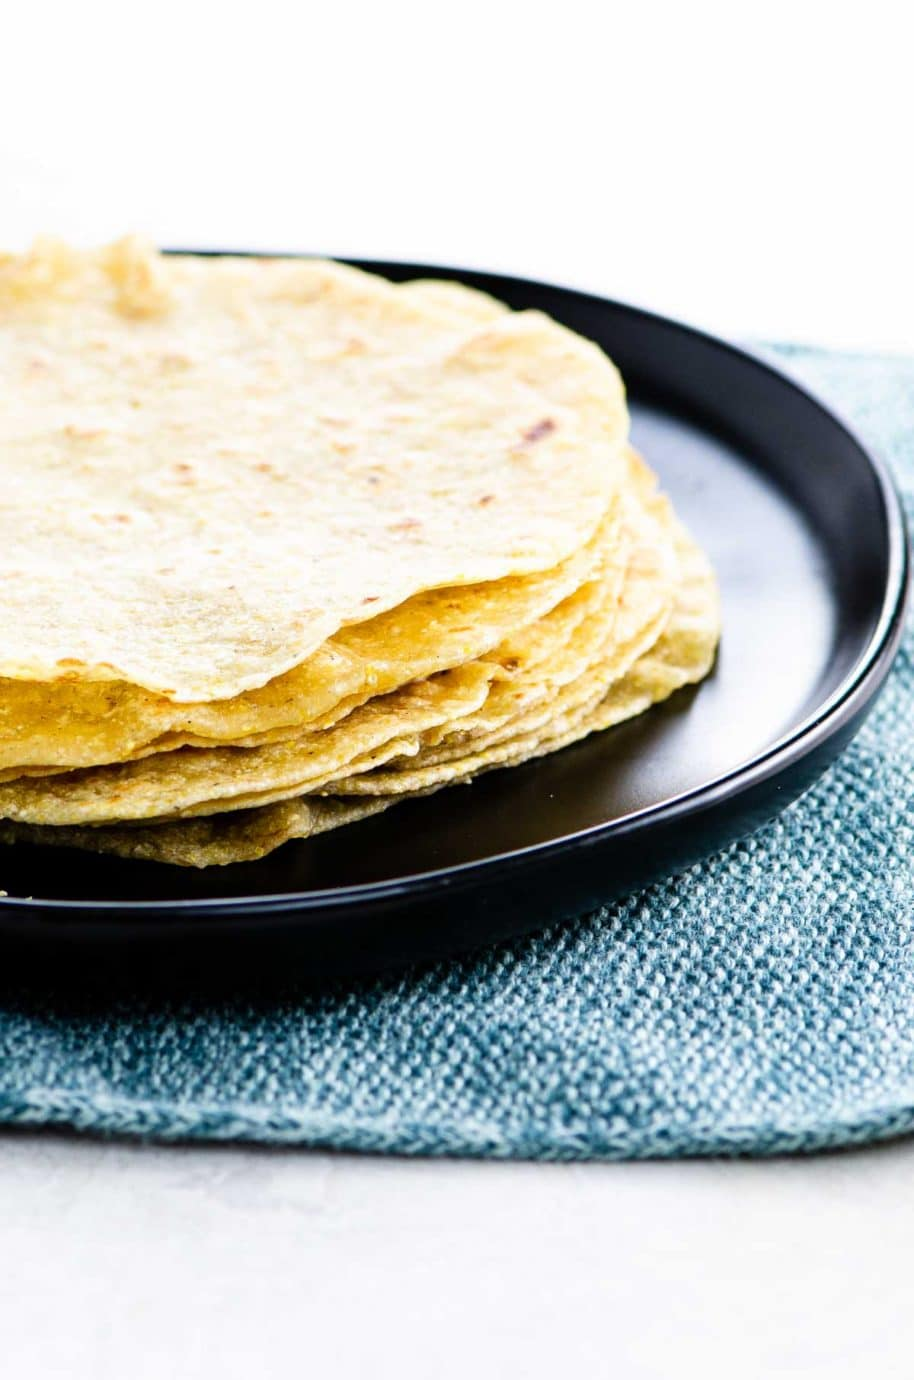 a stack of soft corn tortillas on a black plate on a blue textile background